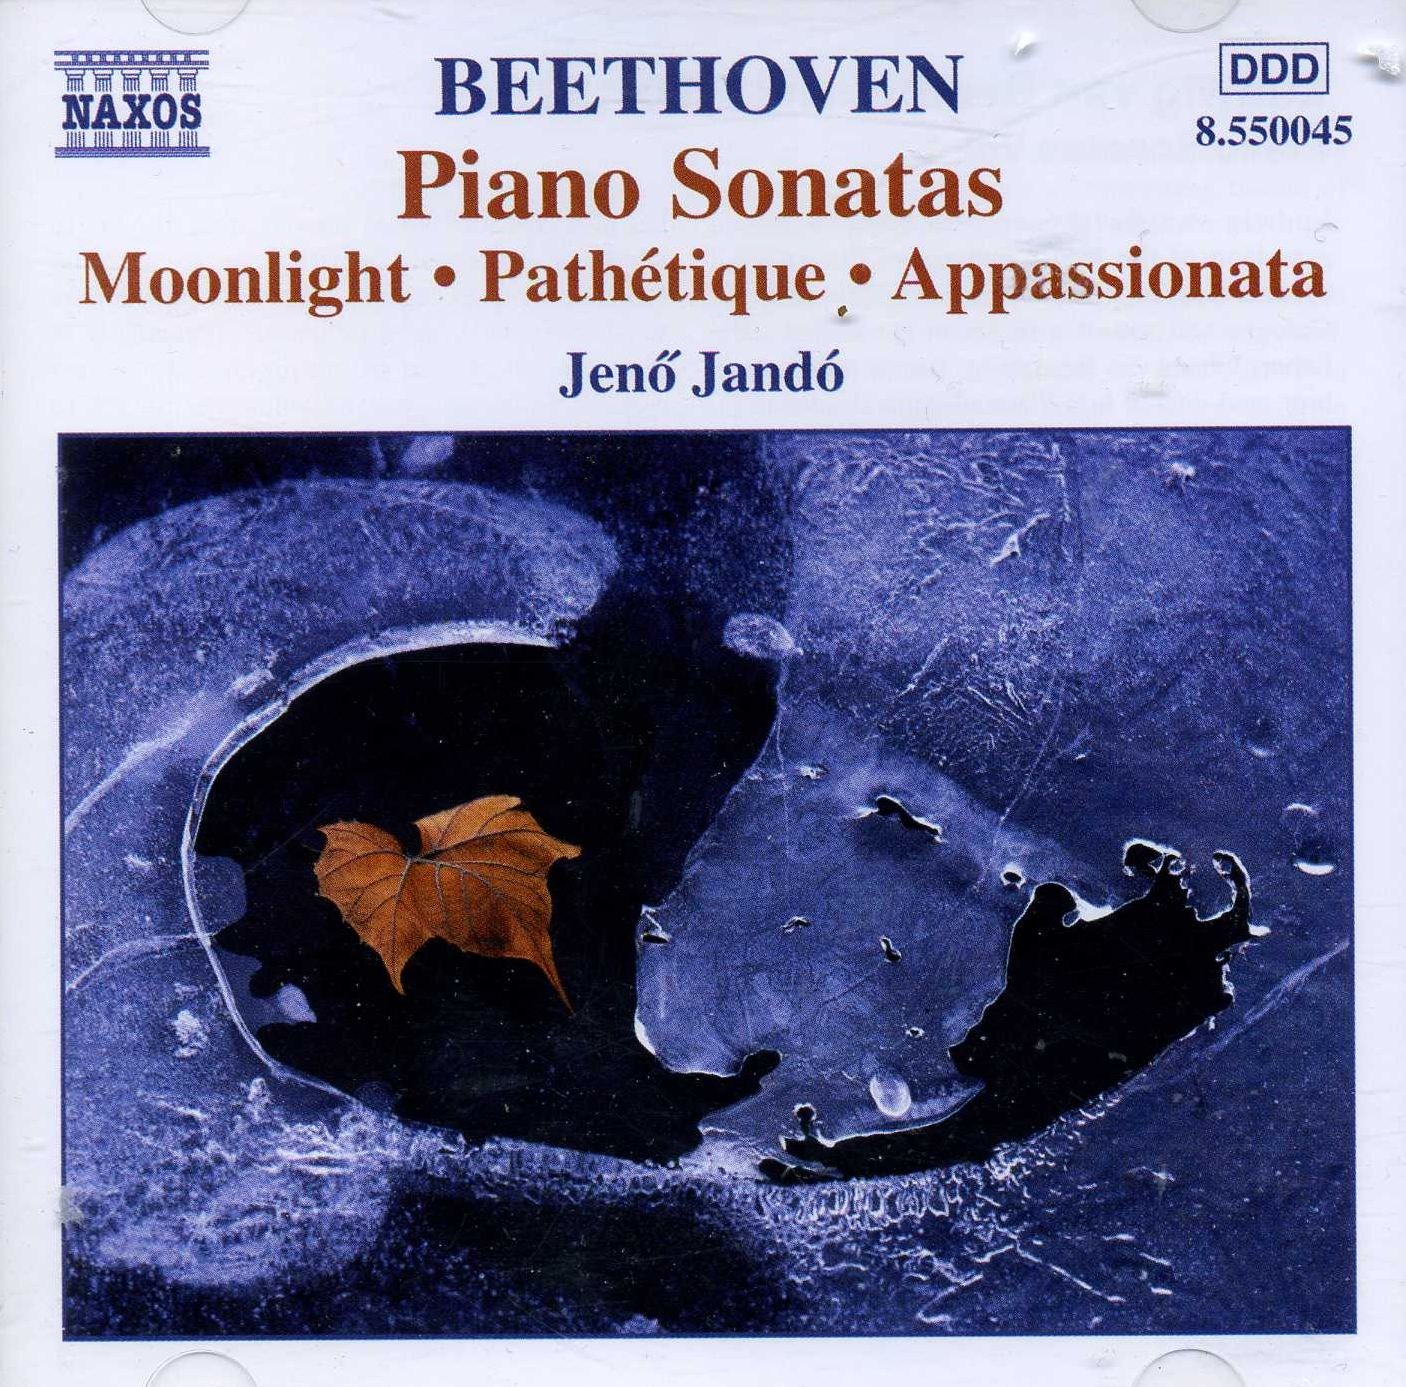 Beethoven Piano Sonatas -  Pathetique   Moonlight   Appassionata  - Jeno Jando_front